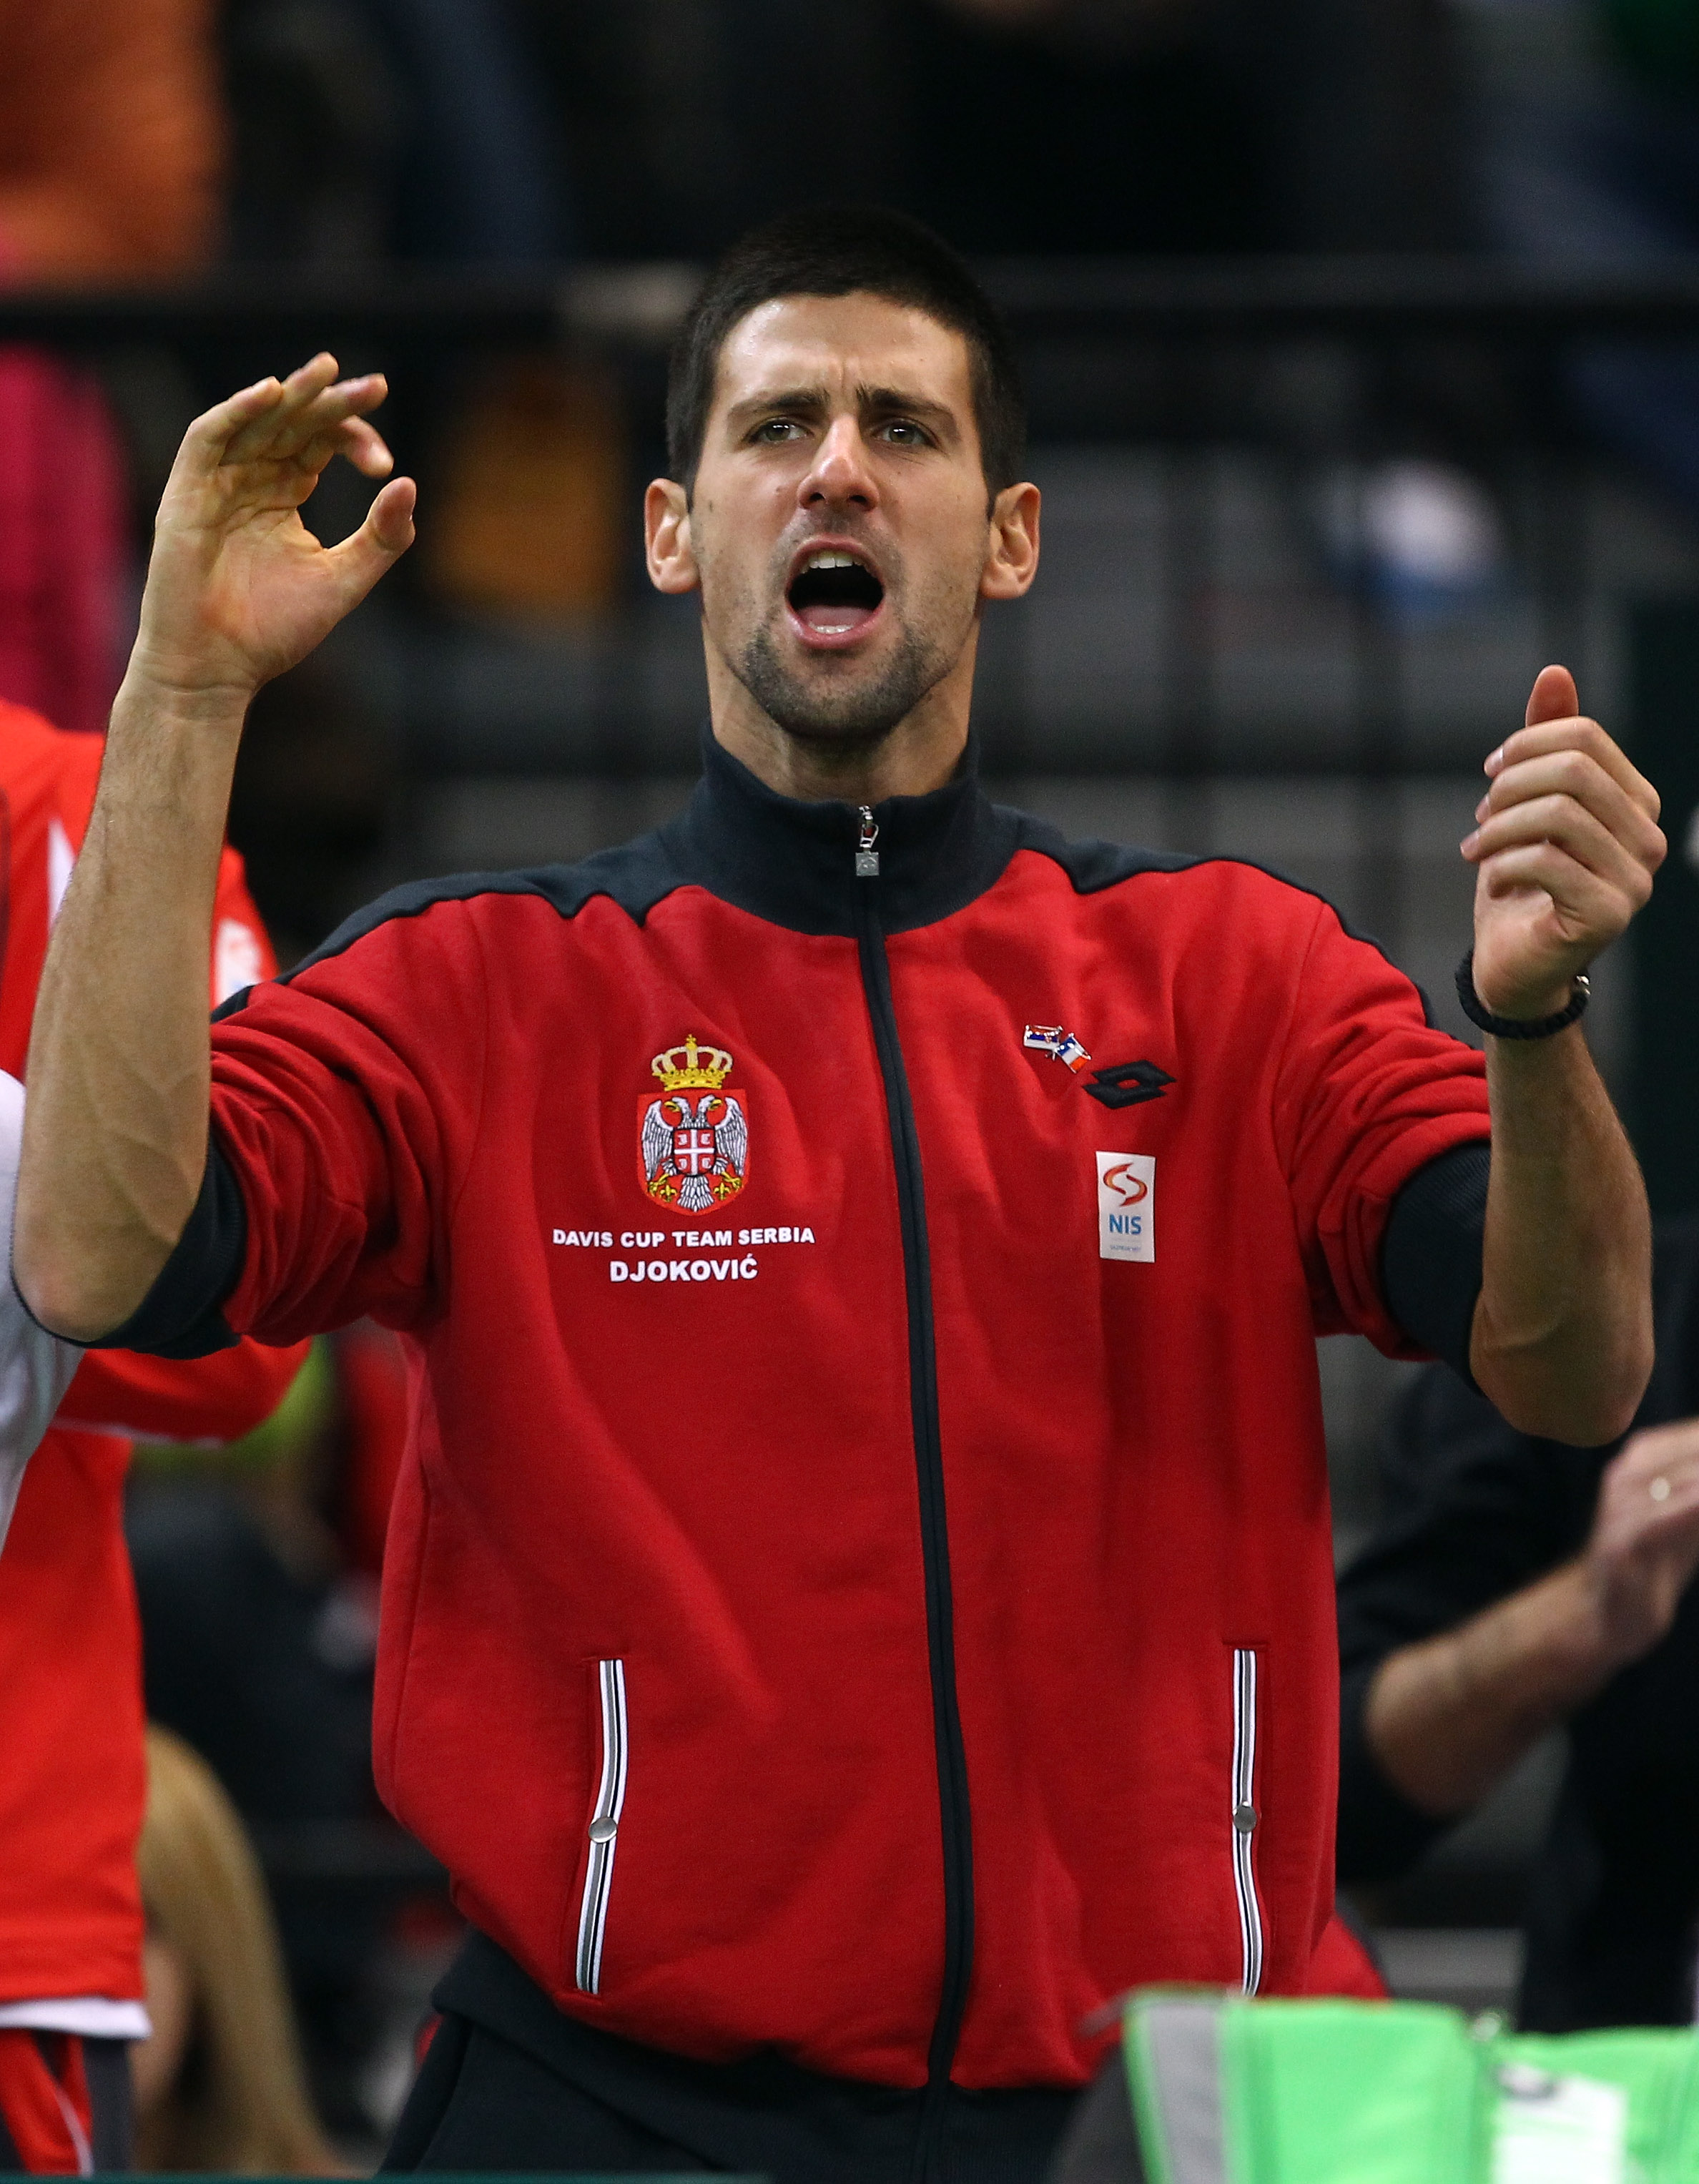 BELGRADE, SERBIA - DECEMBER 05:  Novak Djokovic of Serbia gives his support as Viktor Troicki of Serbia plays against Michael Llodra of France during day three of the Davis Cup Tennis Final at the Begrade Arena on December 5, 2010 in Belgrade, Serbia.  (P